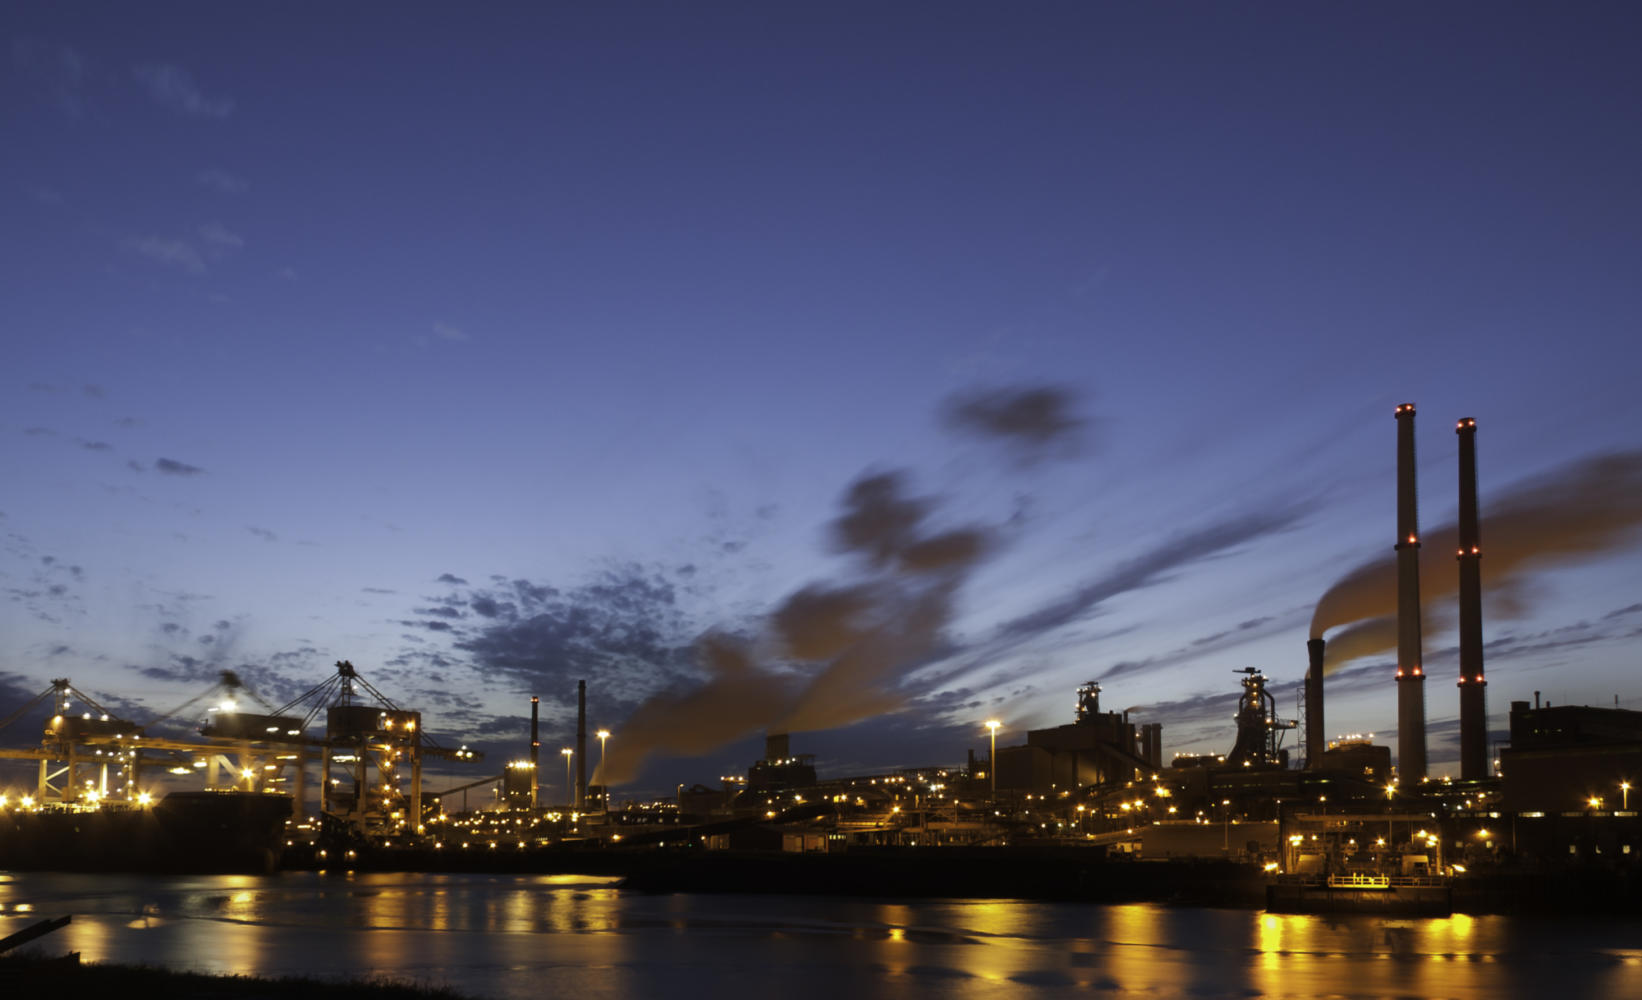 photograph of industrial buildings at dusk